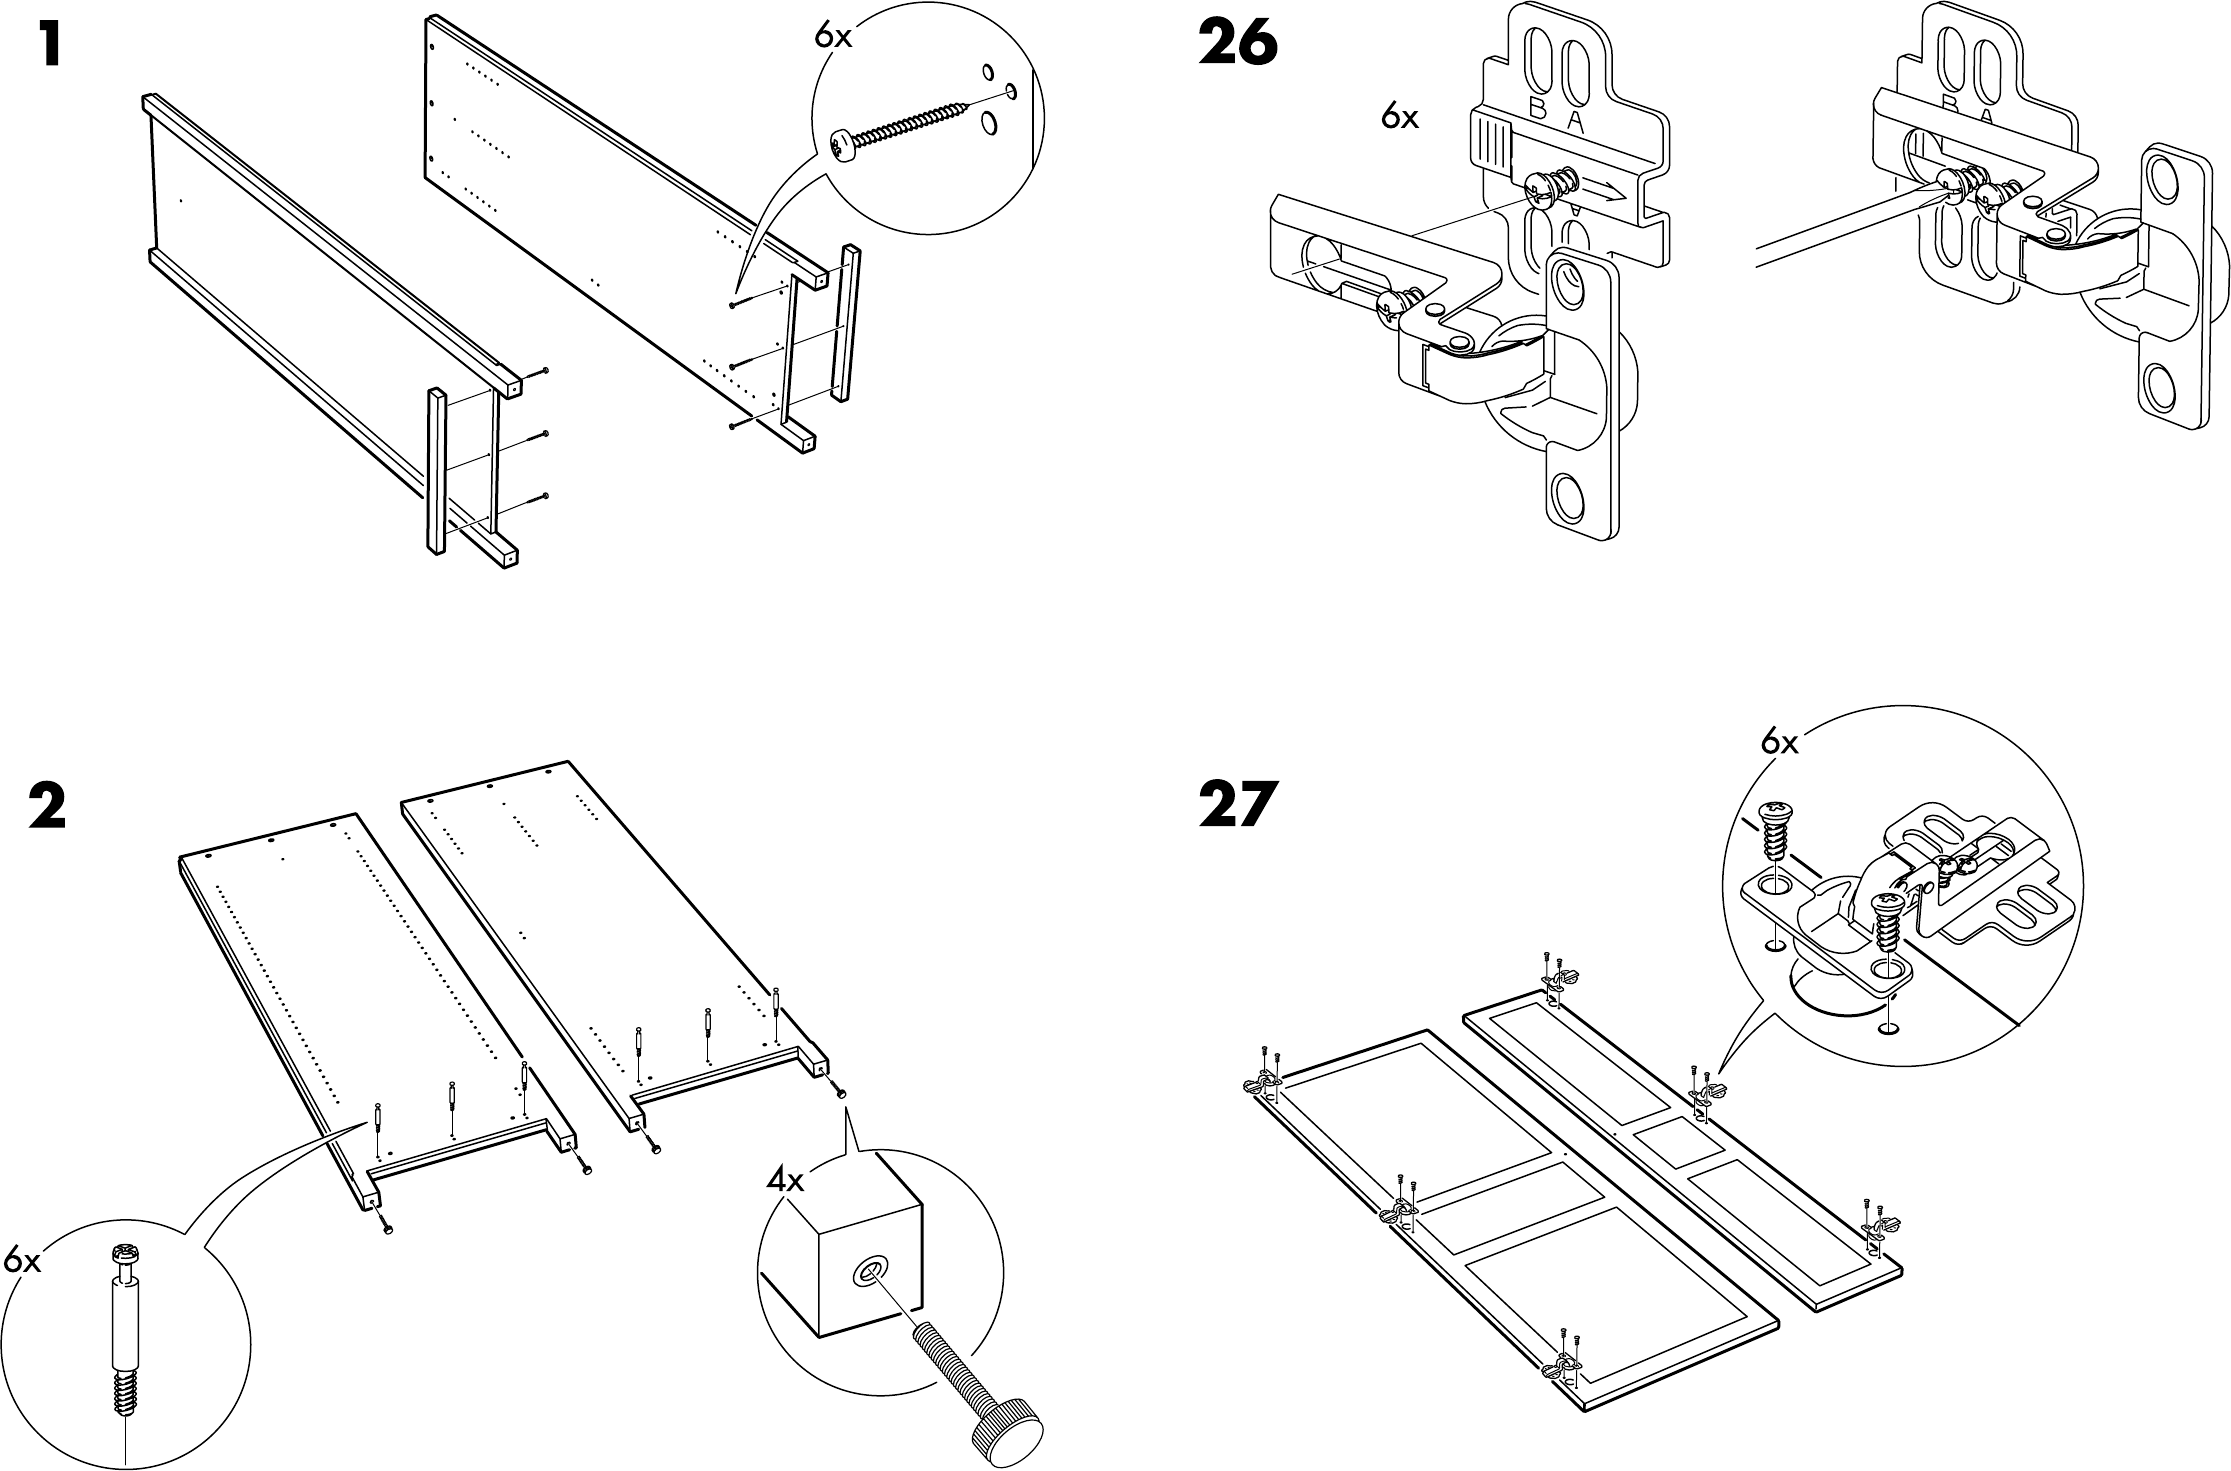 Ikea Folding Table With Chairs ~ Handleiding Ikea Hemnes garderobekast (pagina 4 van 10) (Dansk